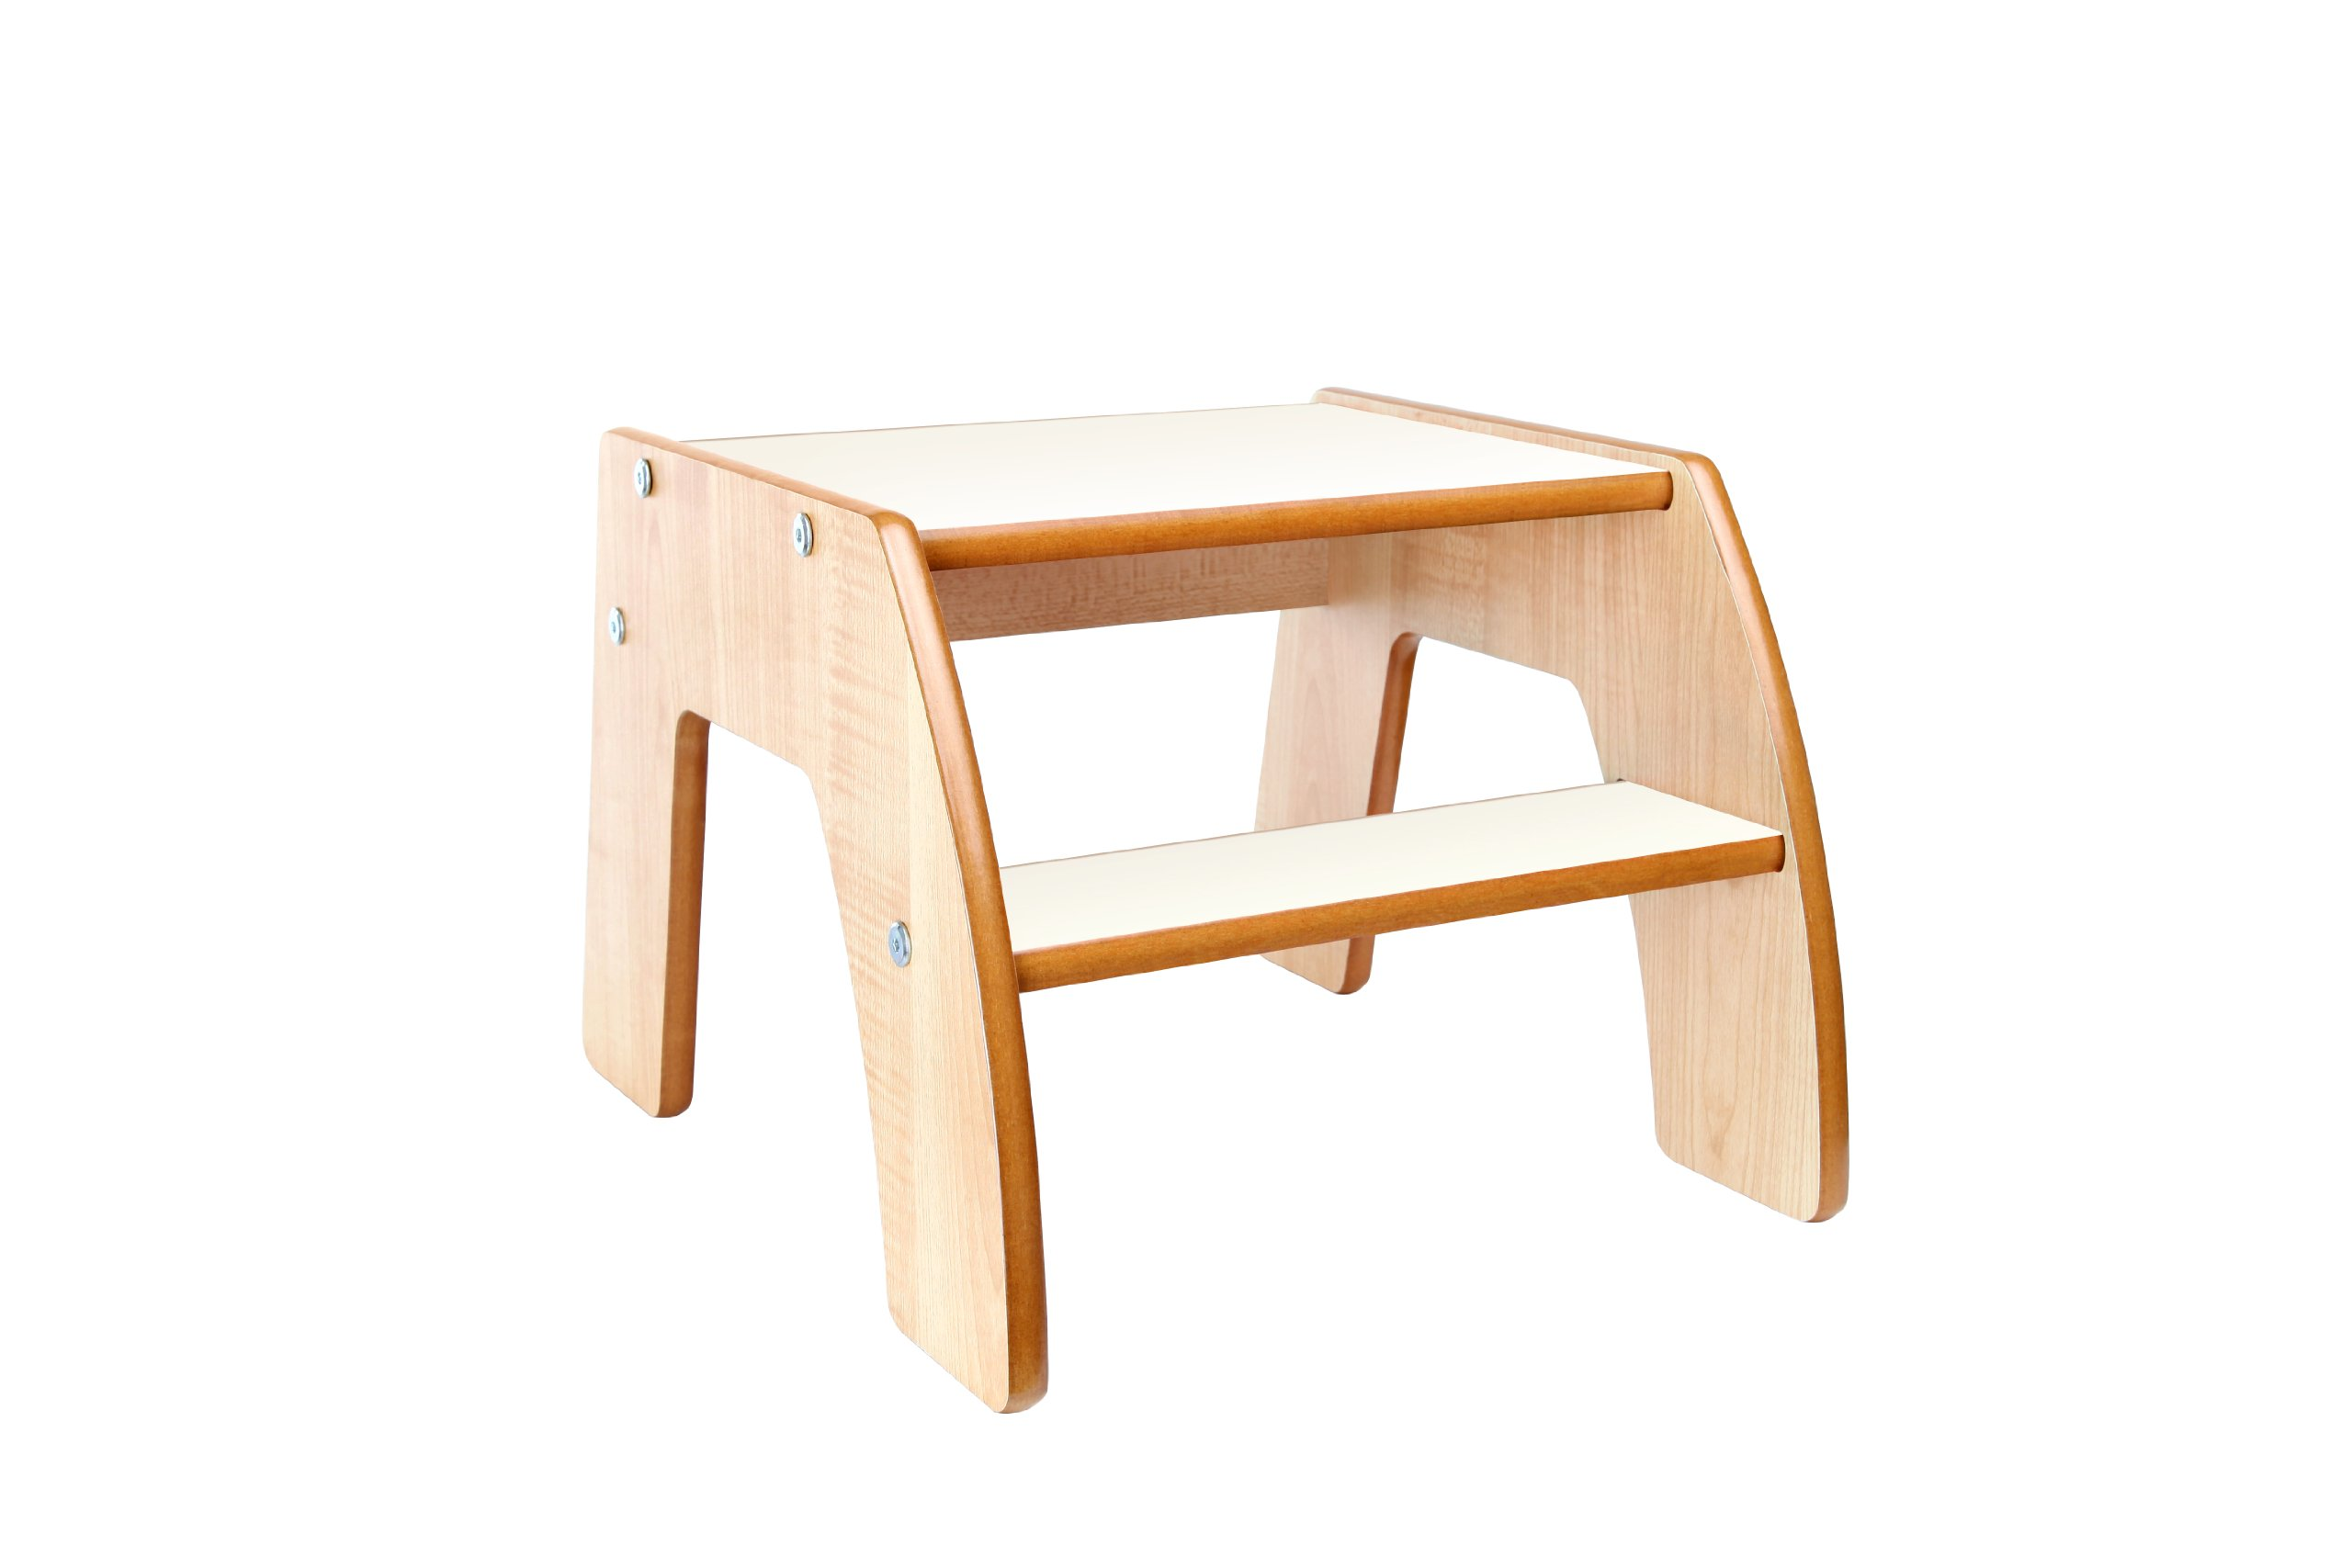 Marvelous photograph of  Helper FunStep Wooden Step Stool with Natural Edging (White) eBay with #AE5310 color and 2560x1707 pixels